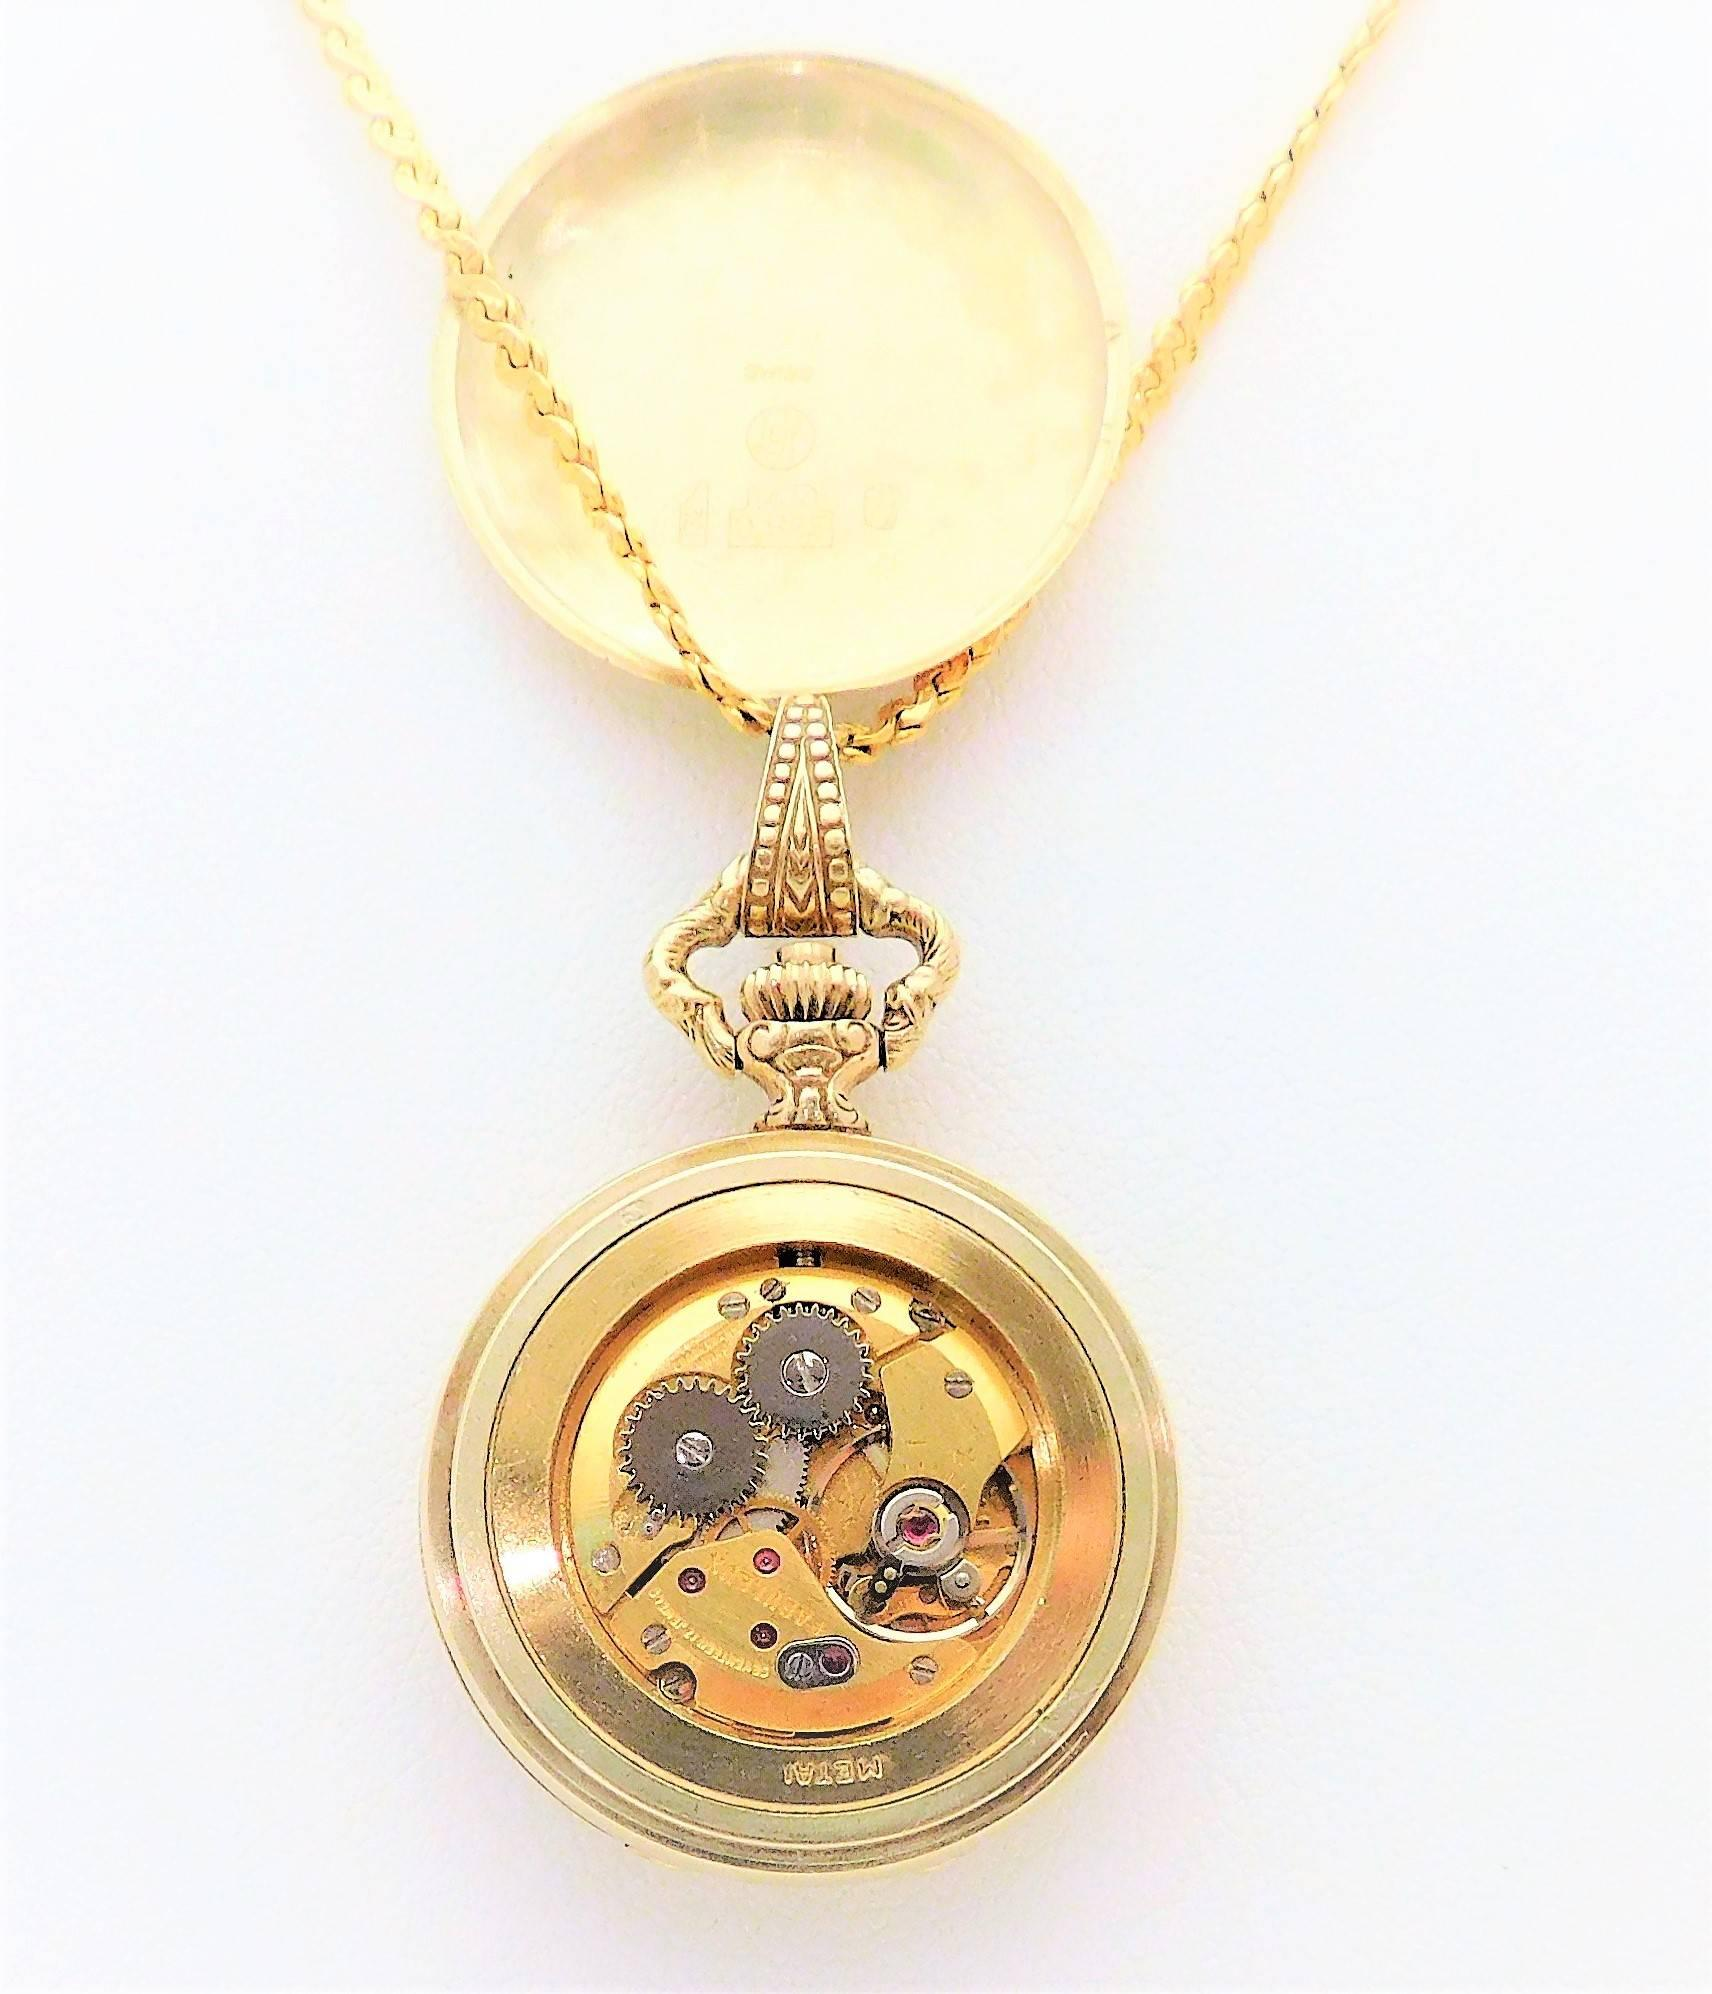 necklace bucherer watch chain vintage to and products pendant ball